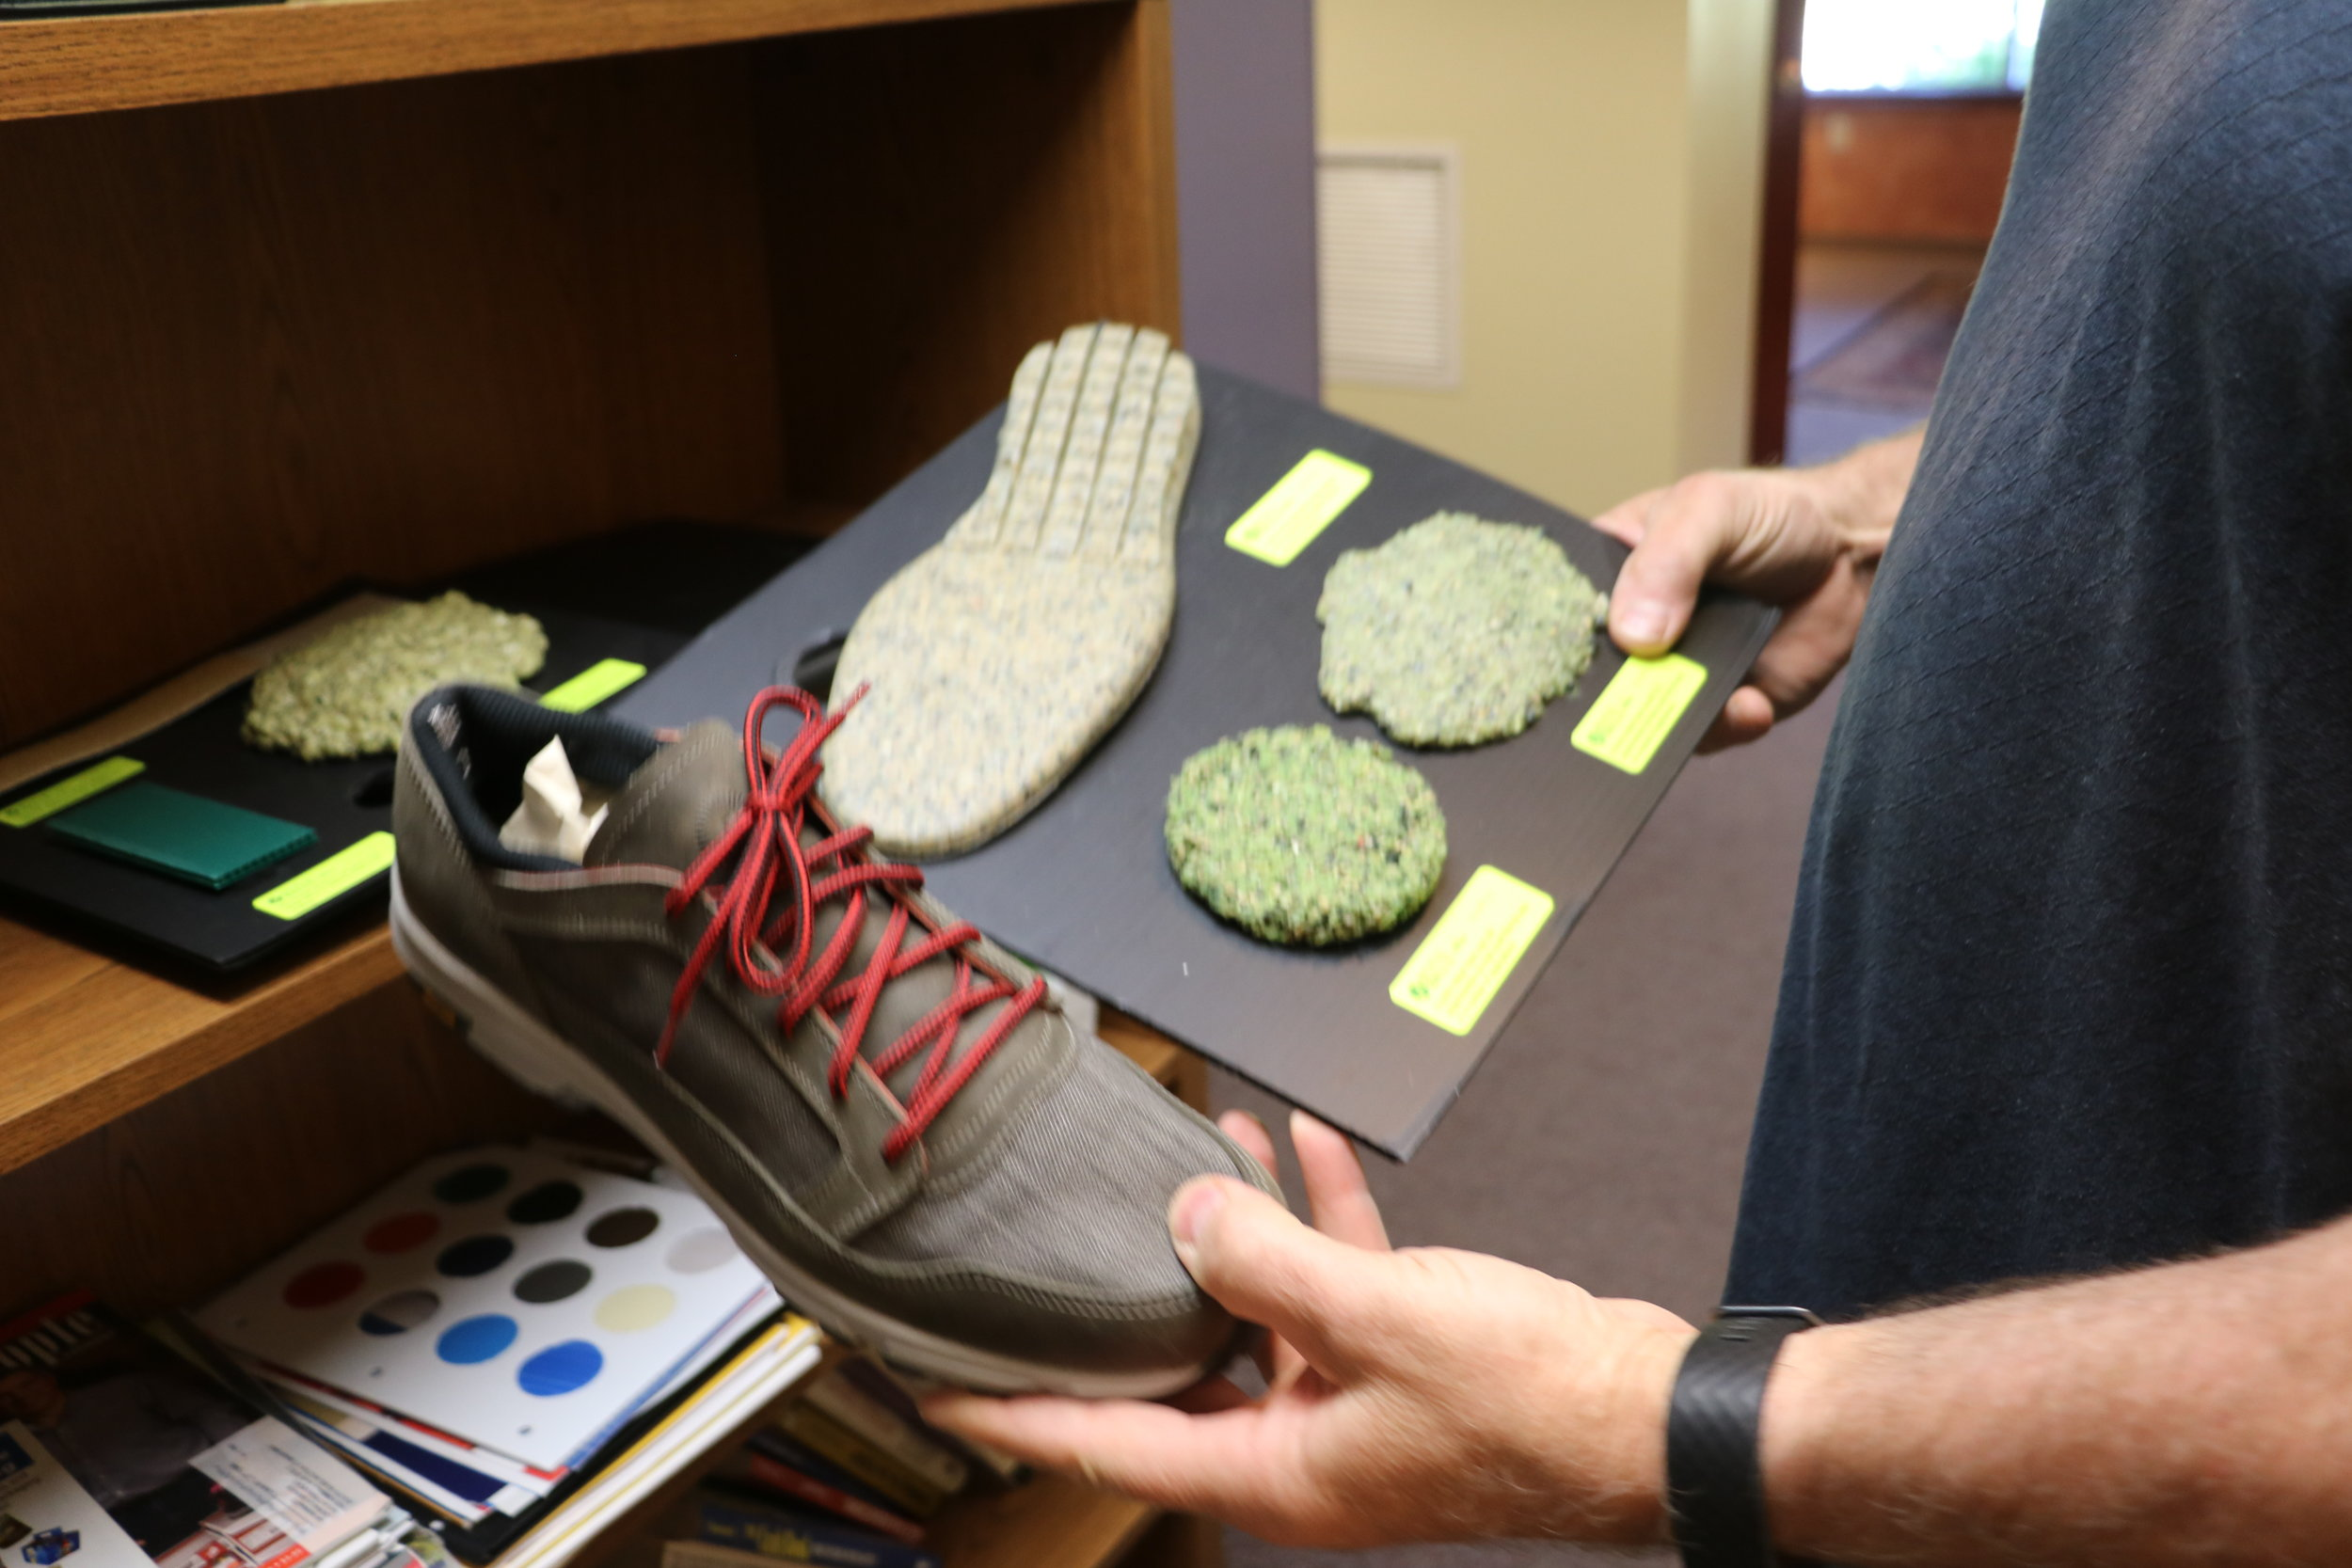 Material from deconstructed tennis balls is being used in prototype shoes and other products.